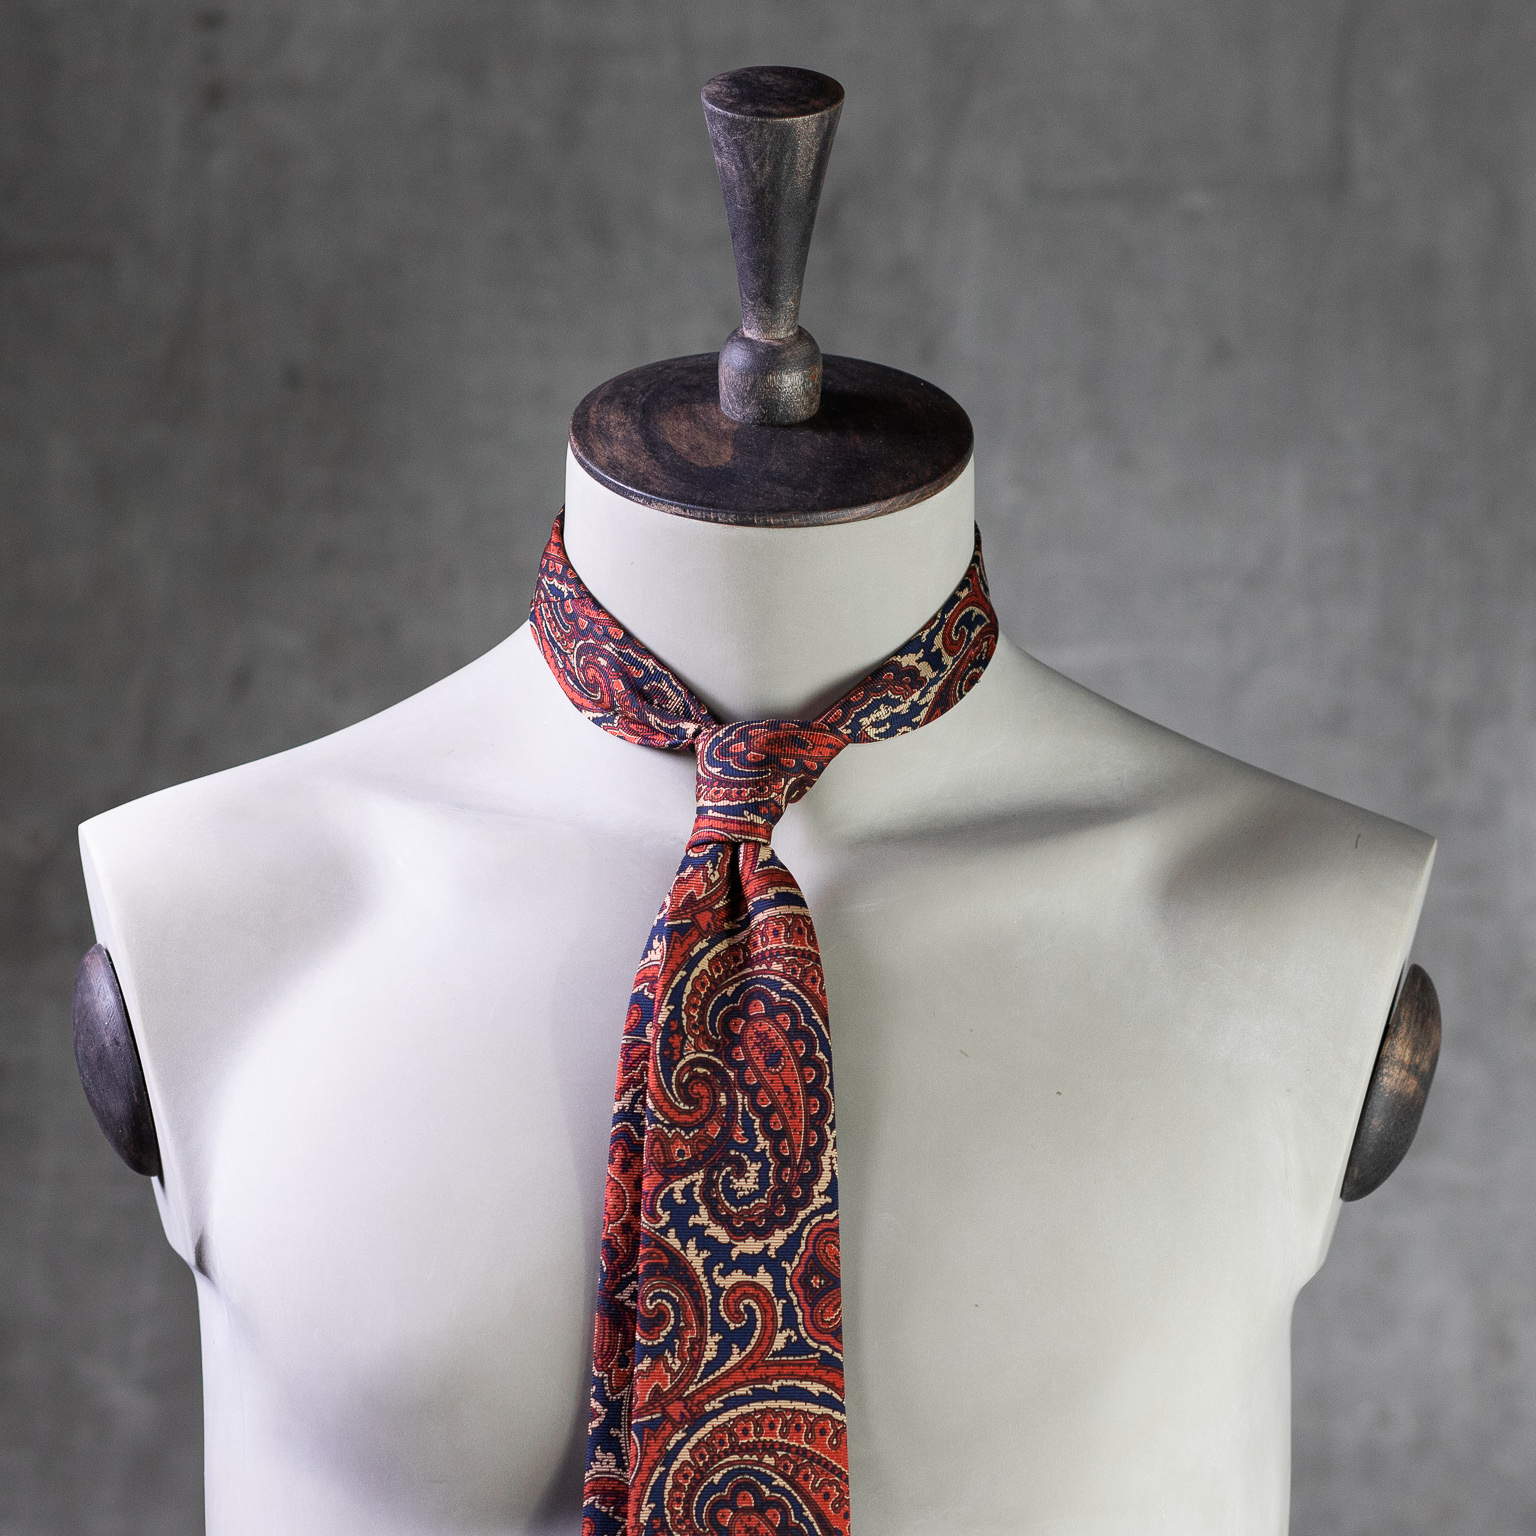 ANCIENT-MADDER-0182-Tie-Initials-Corbata-Iniciales-The-Seelk-2